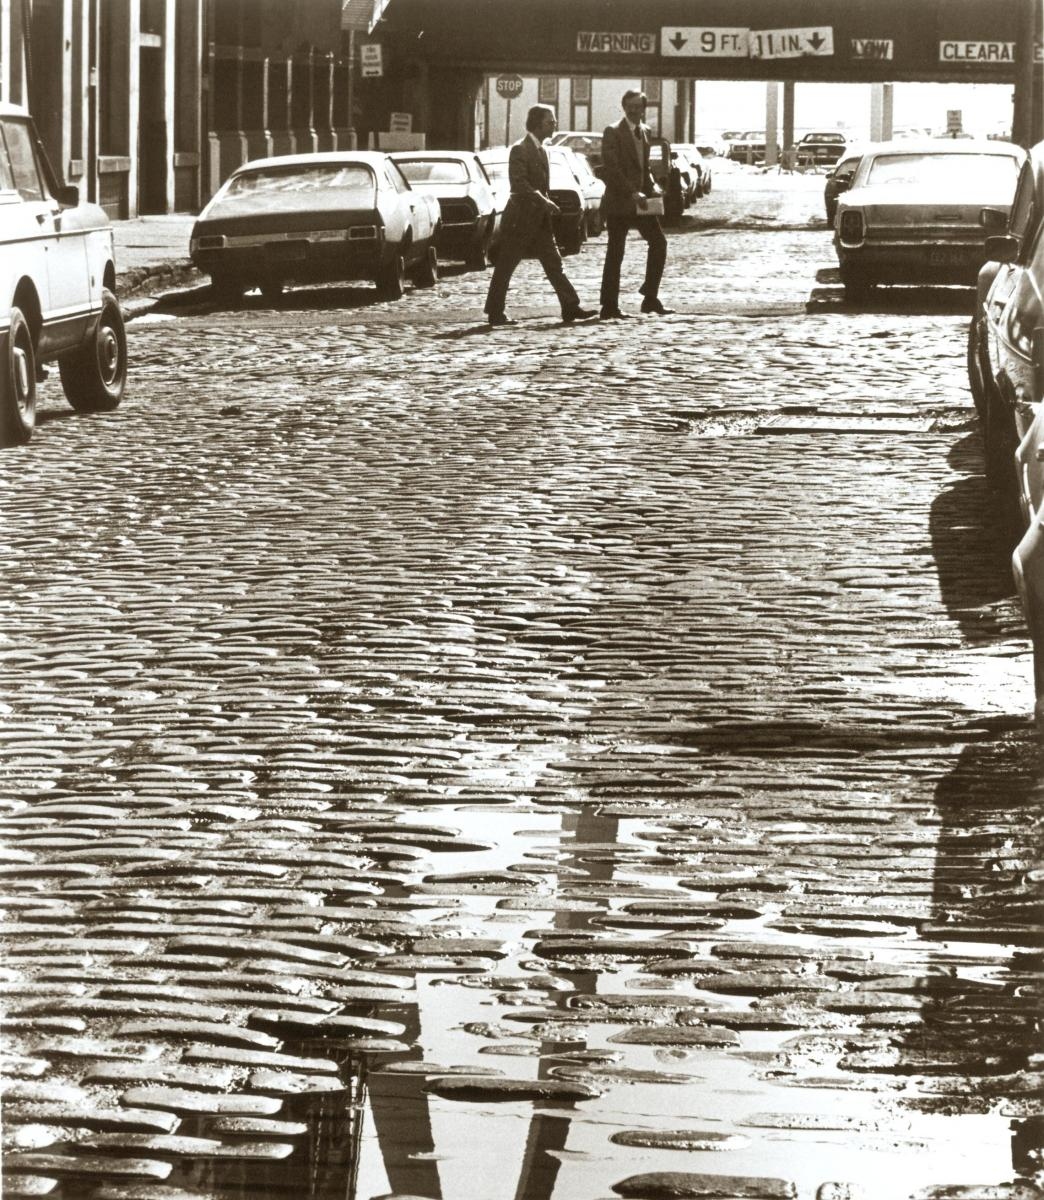 cobblestone street in St. Louis, 1979